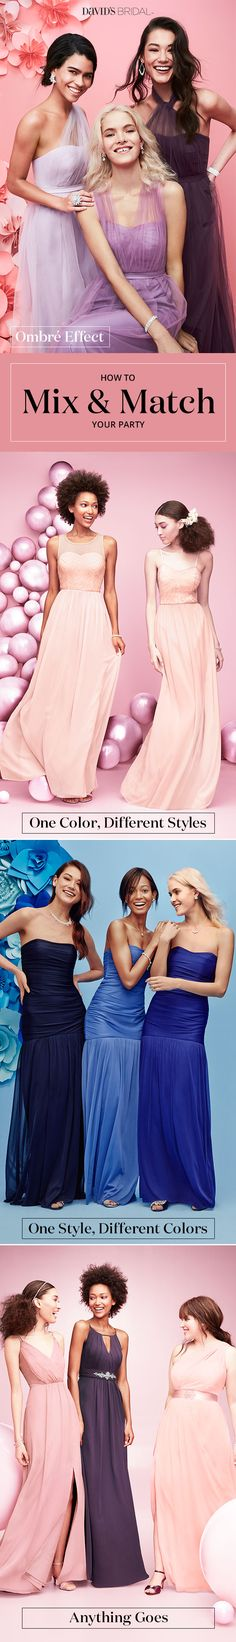 How to mix and match your bridal party! Are you thinking ombre, one color different dress, one dress different colors, or anything goes? The bridesmaid dress options are endless!